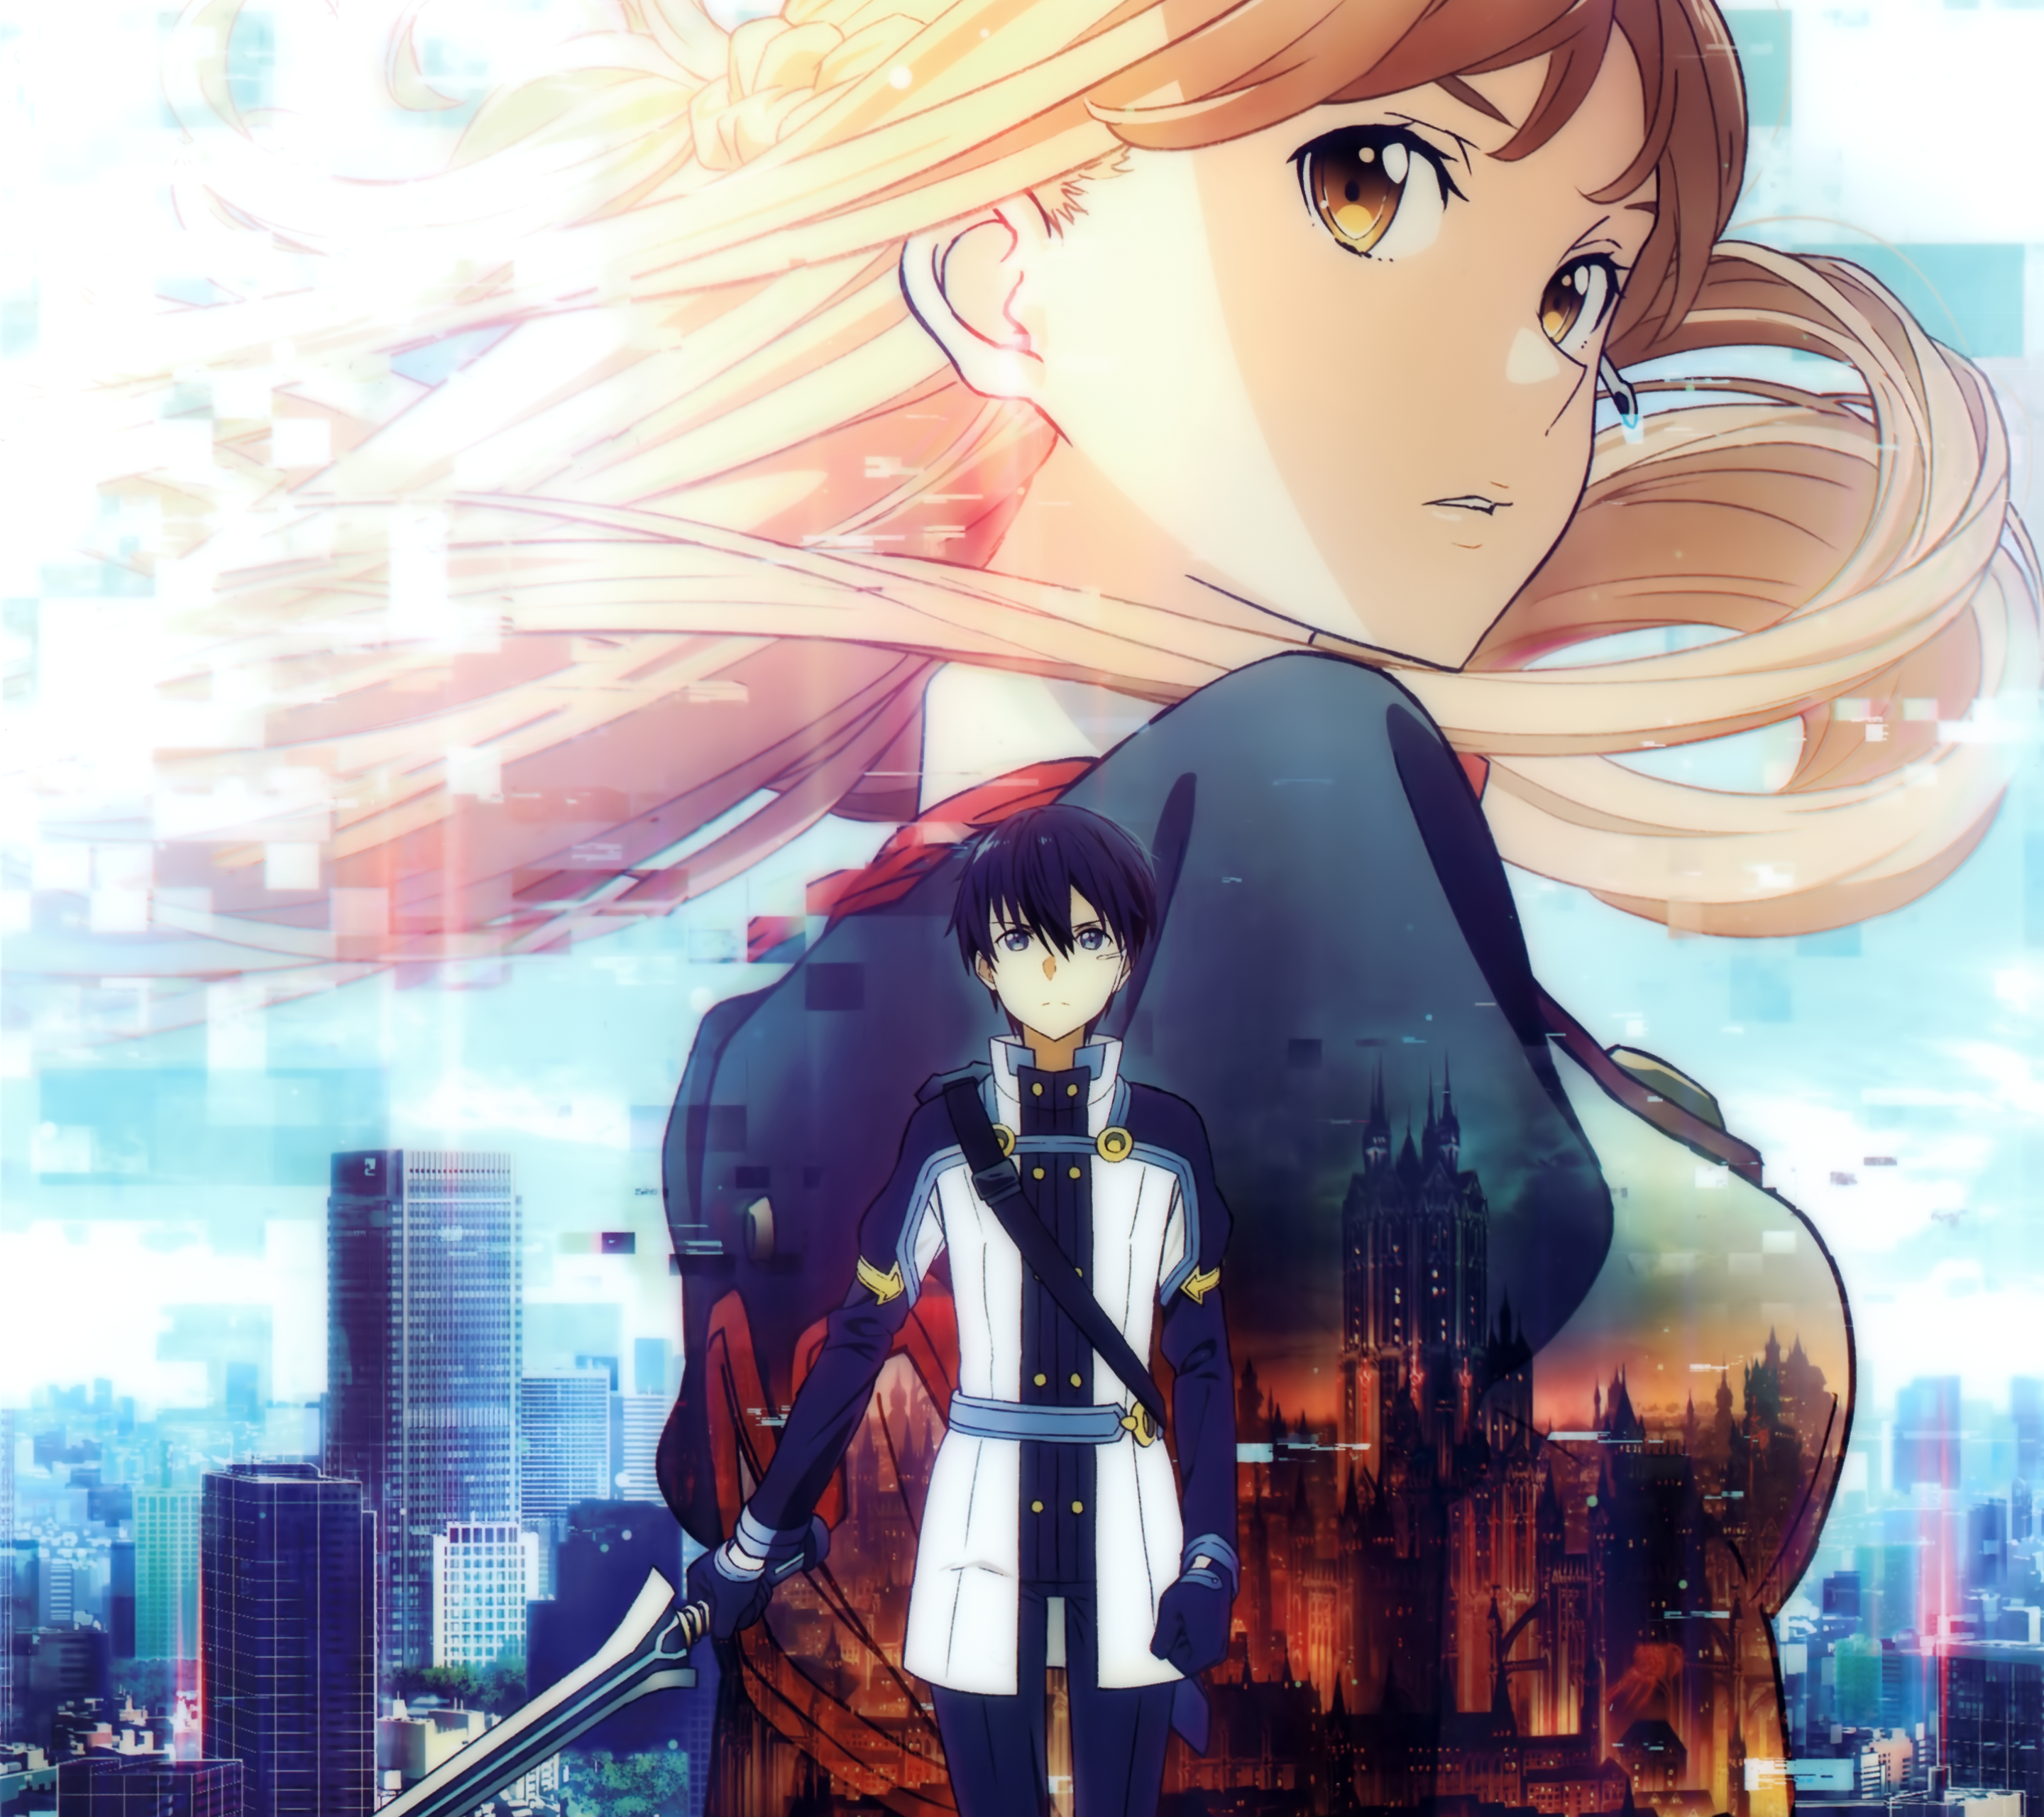 Pin By Rocki On Sao In 2020 Sword Art Online Movie Sword Art Online Wallpaper Sword Art Online Season